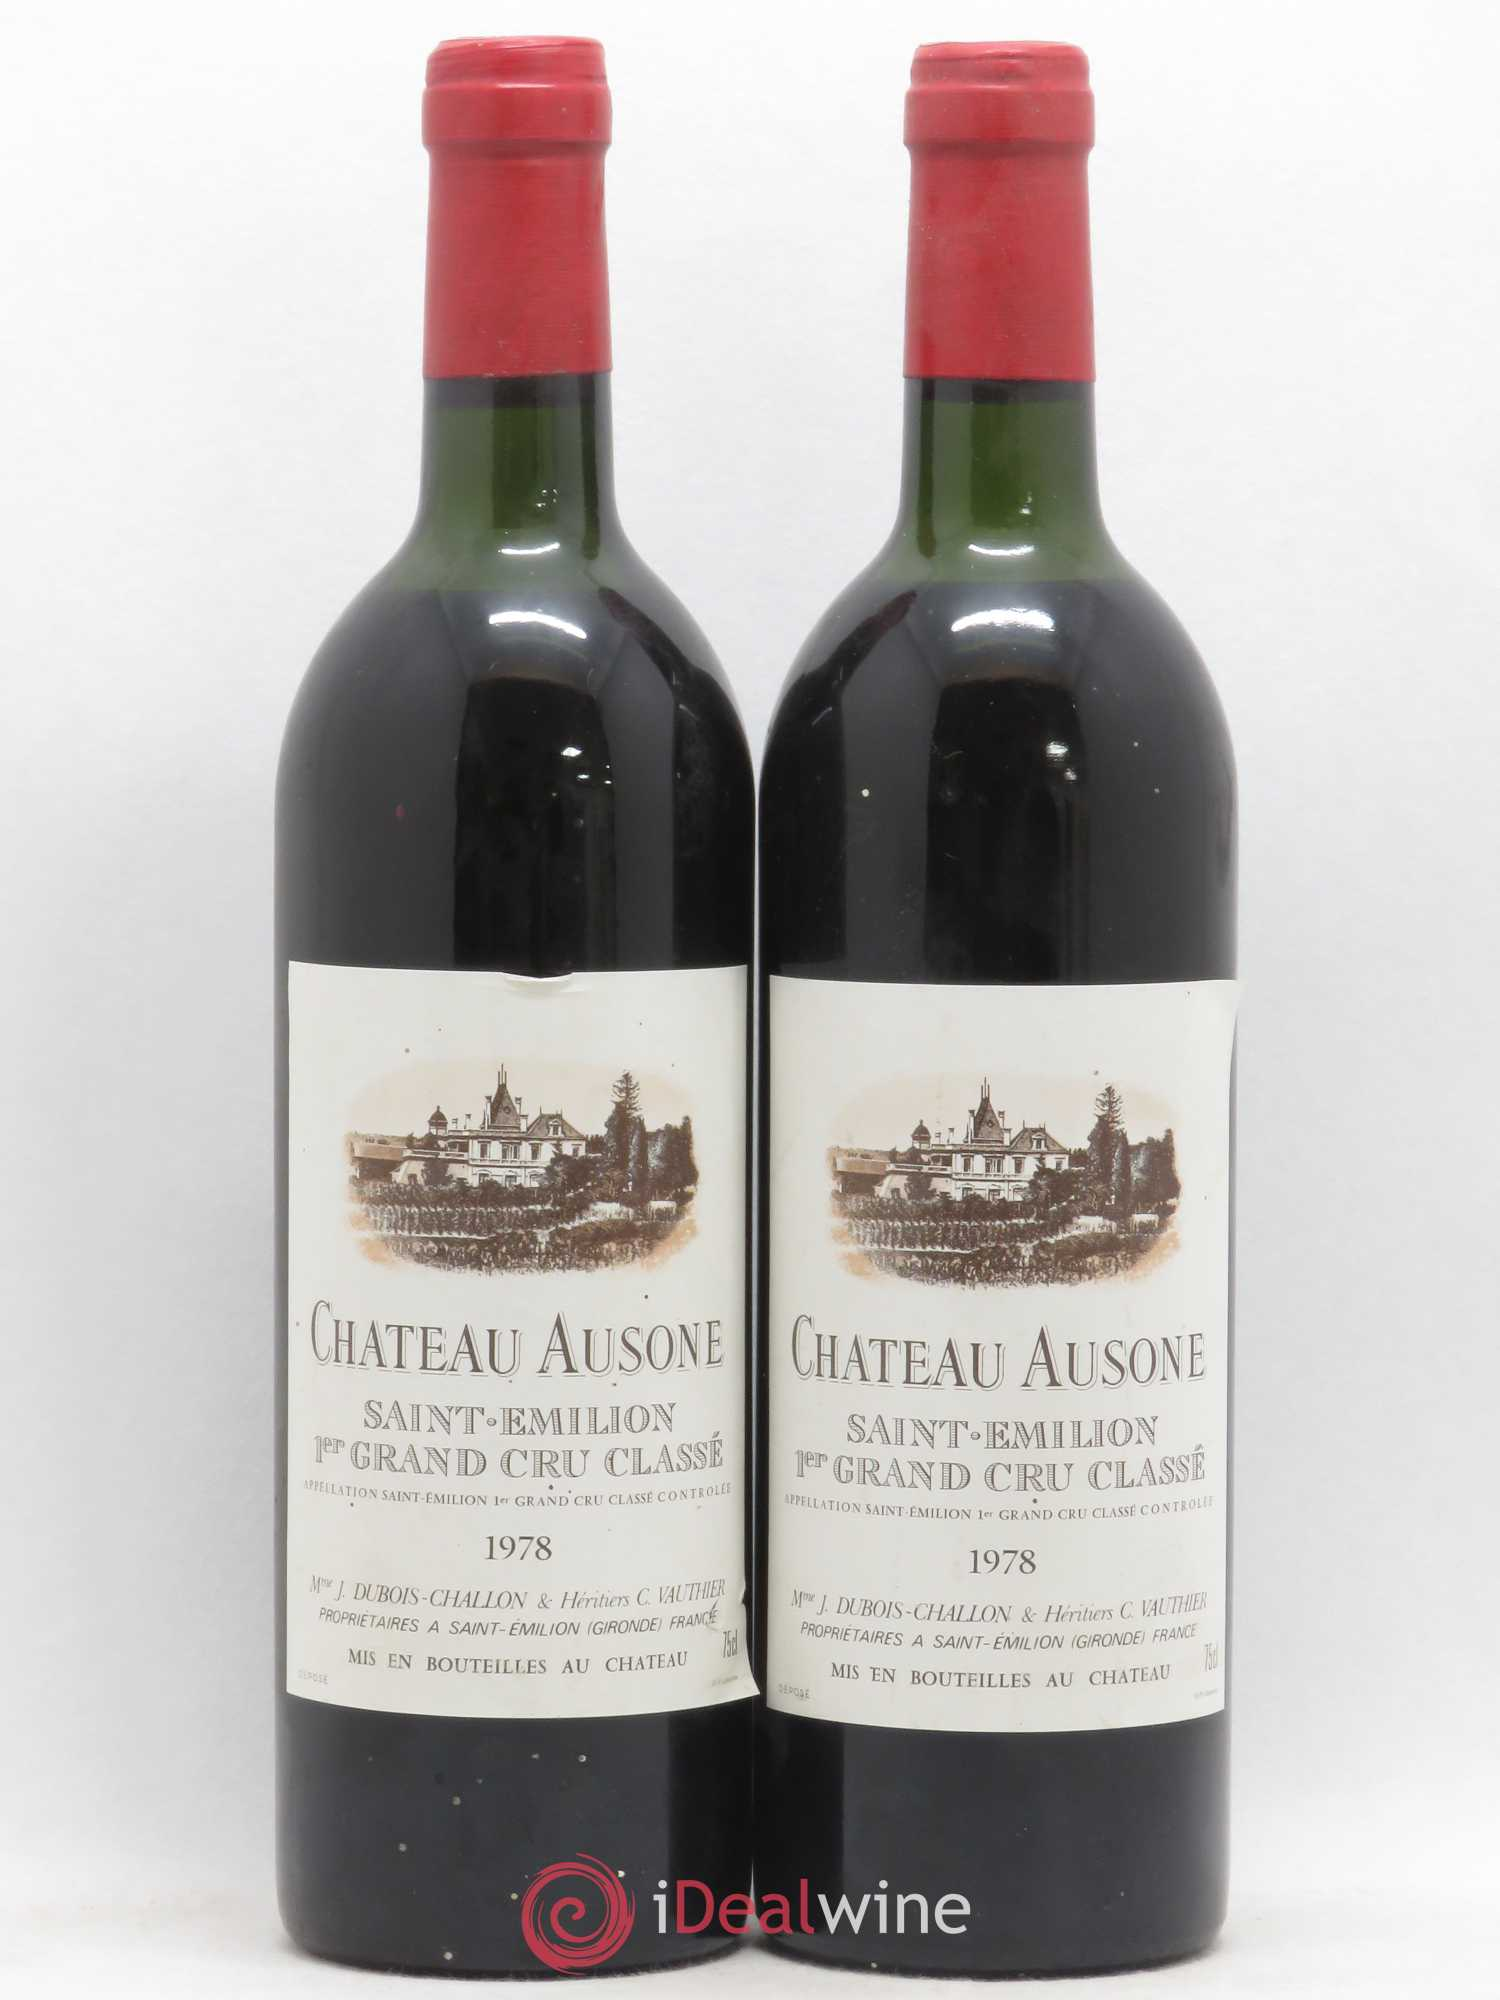 Château Ausone 1er Grand Cru Classé A  1978 - Lot of 2 Bottles